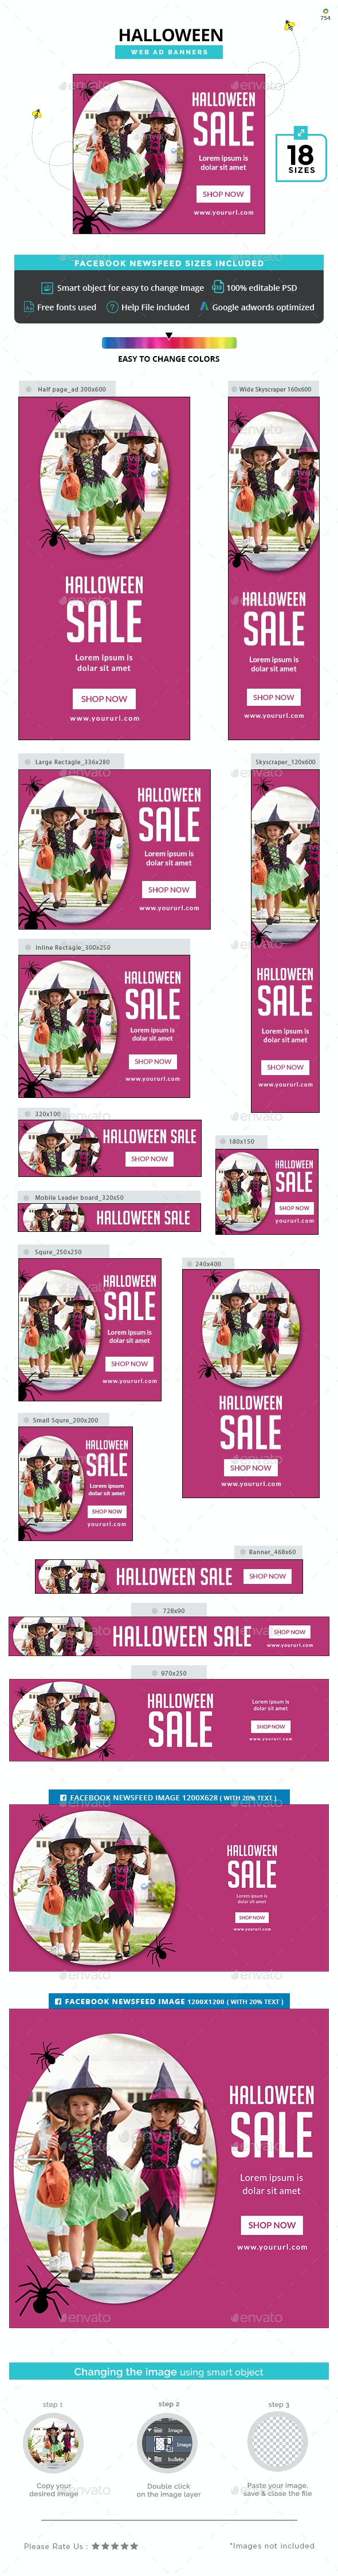 Halloween Banners - Banners & Ads Web Elements